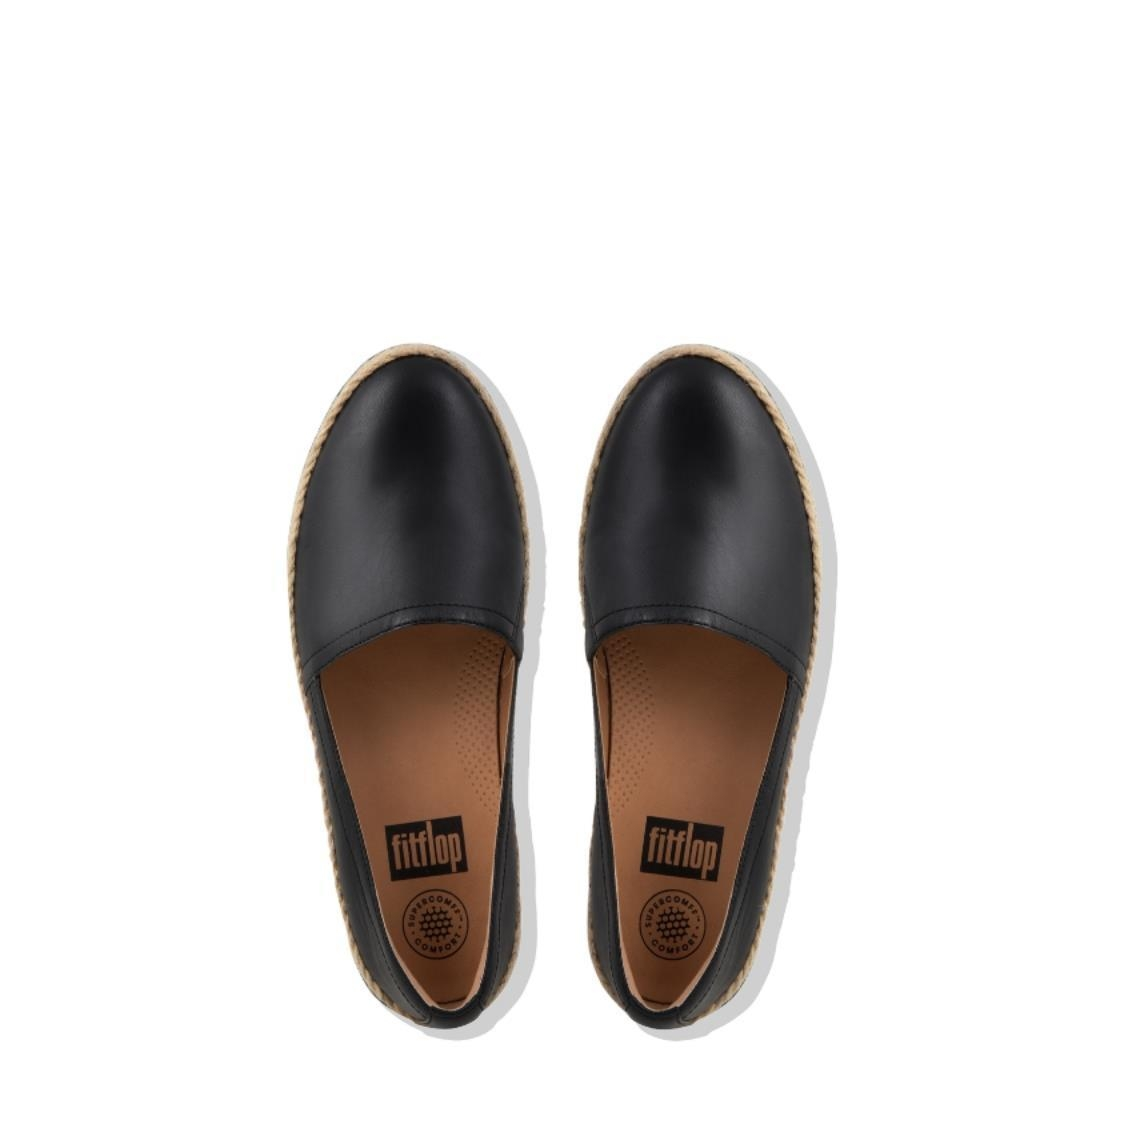 Casa Leather Loafers Black